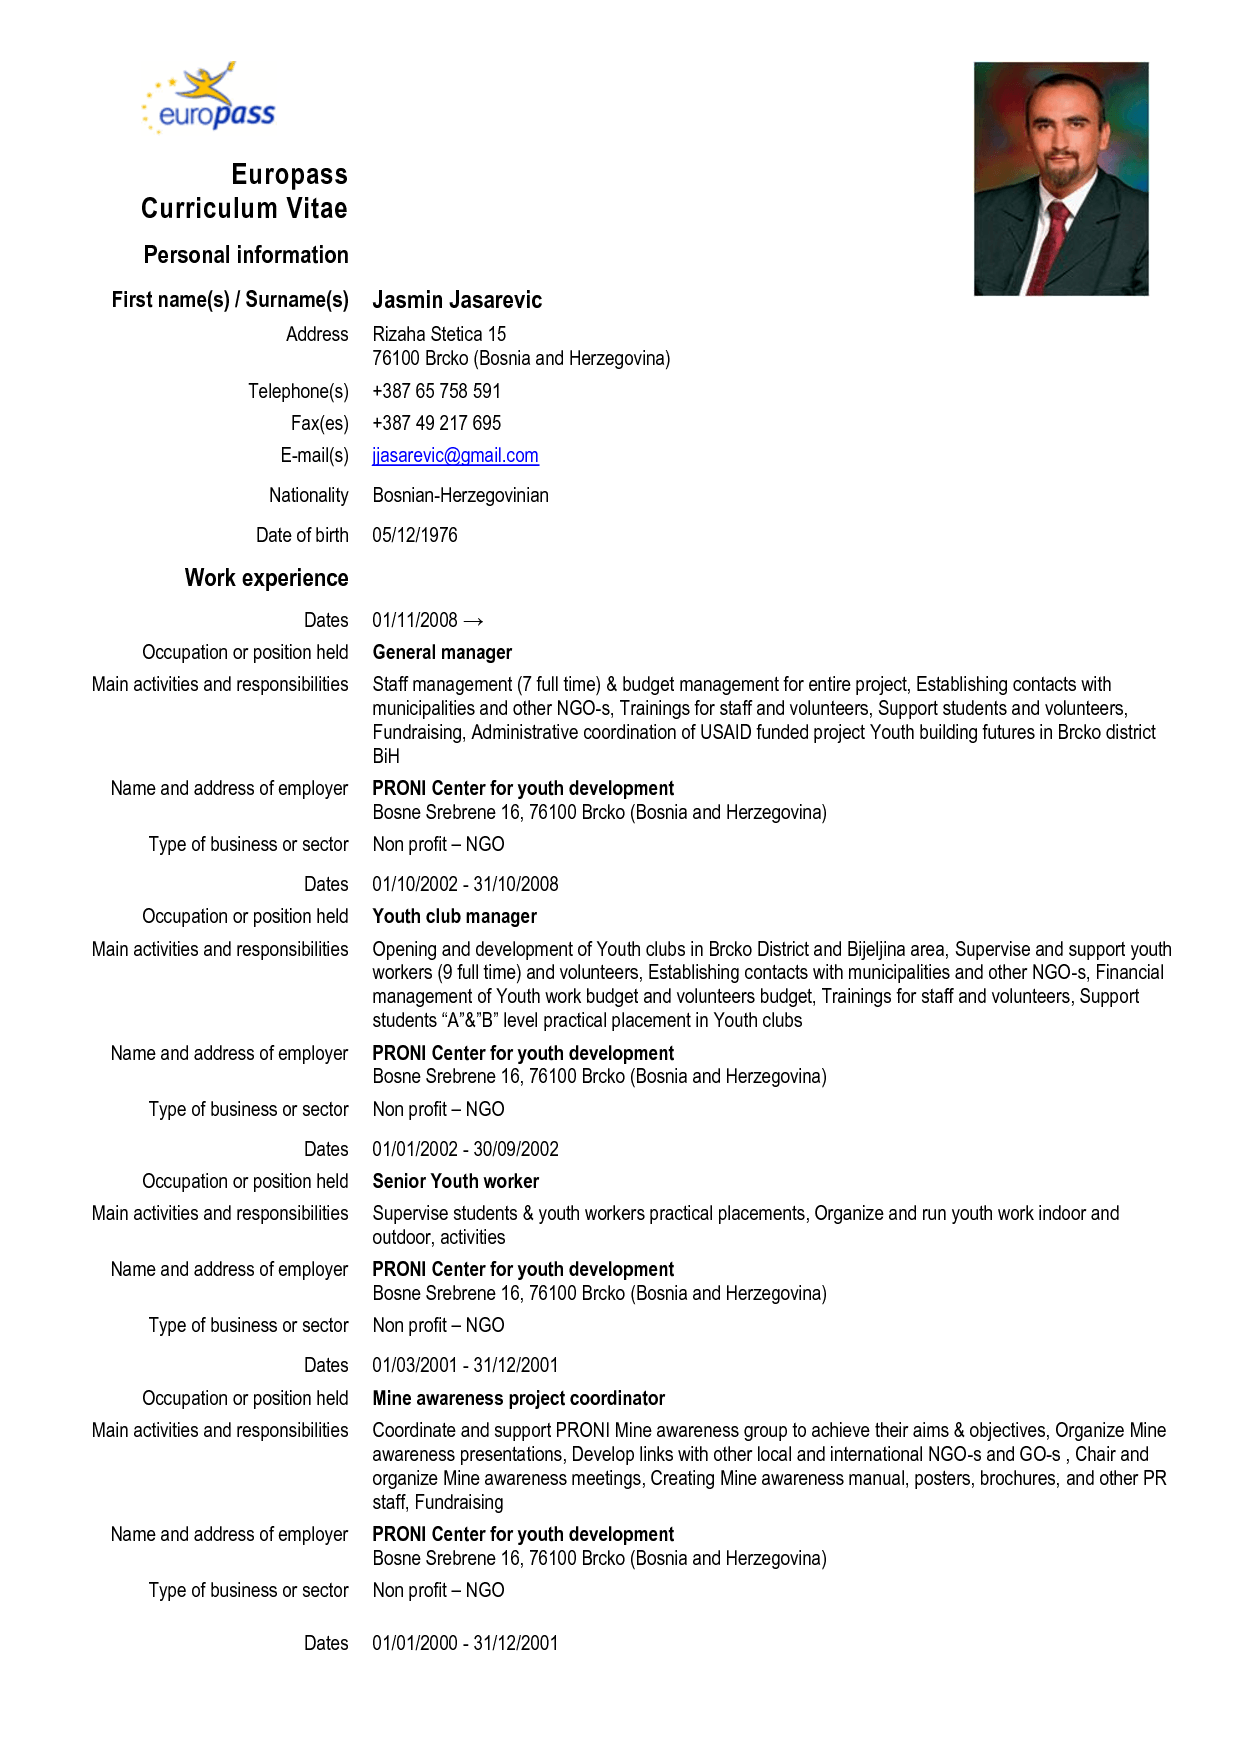 europass cv template english download